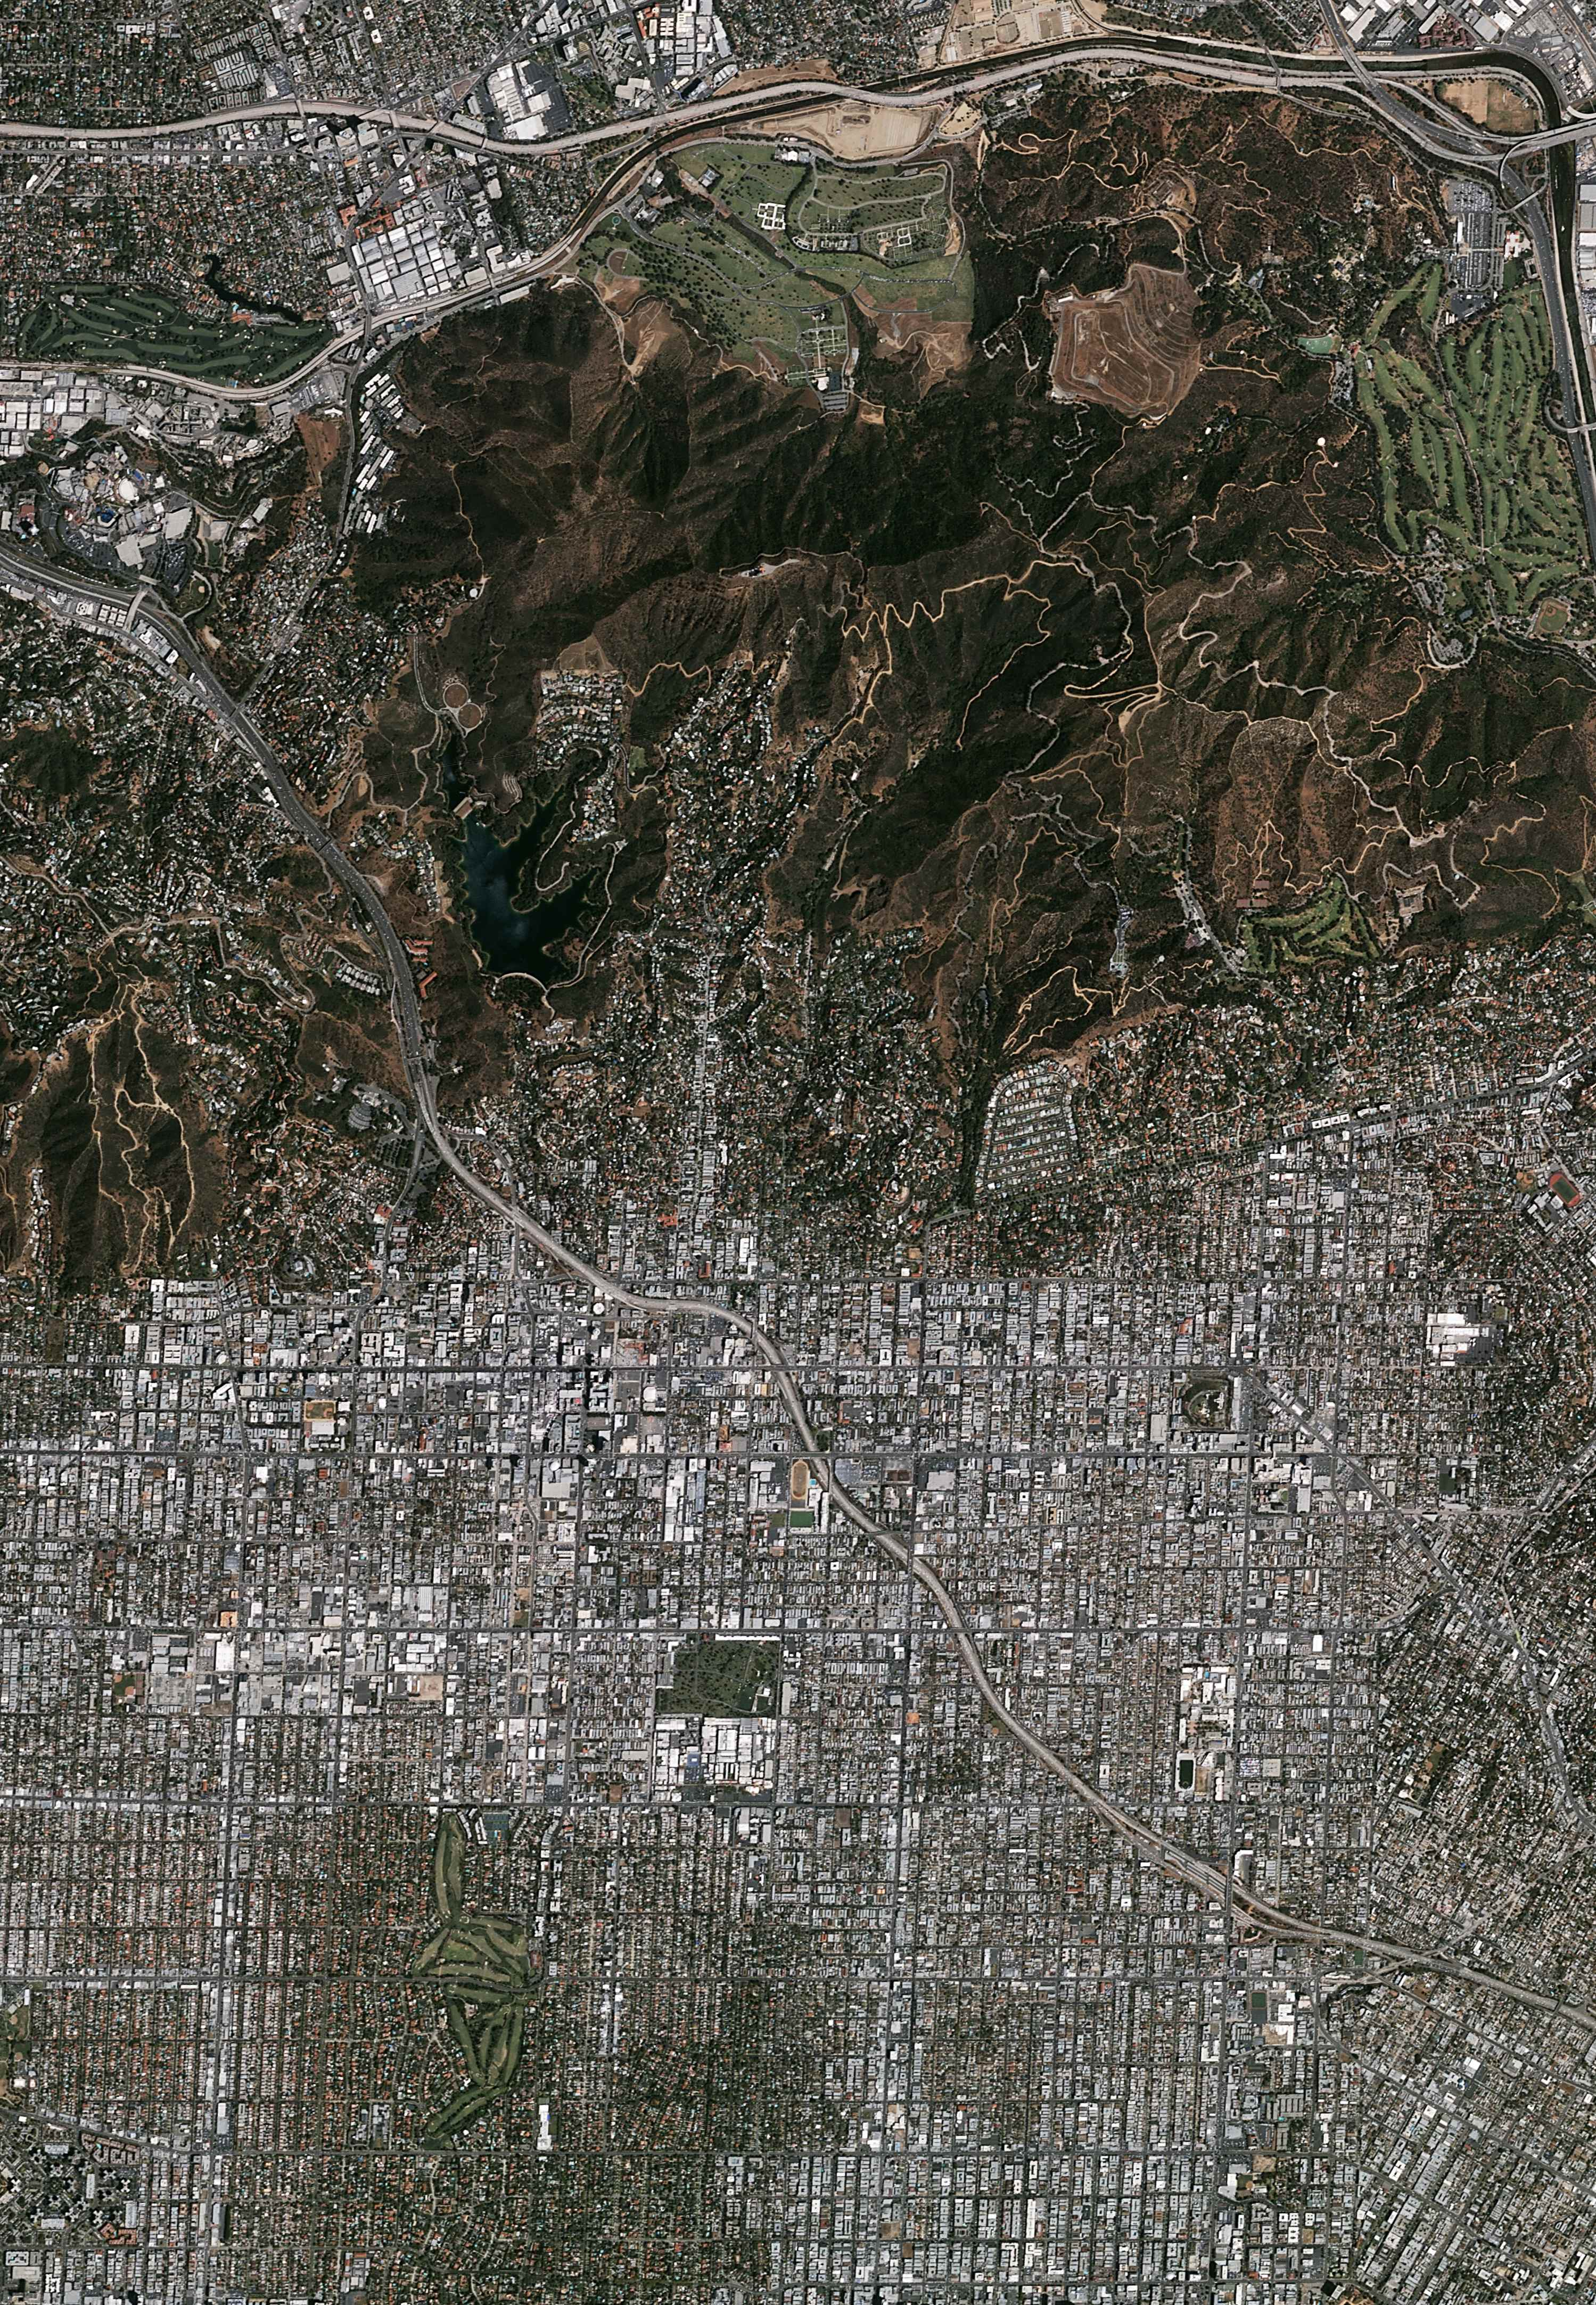 20130421_Hollywood_2_7k